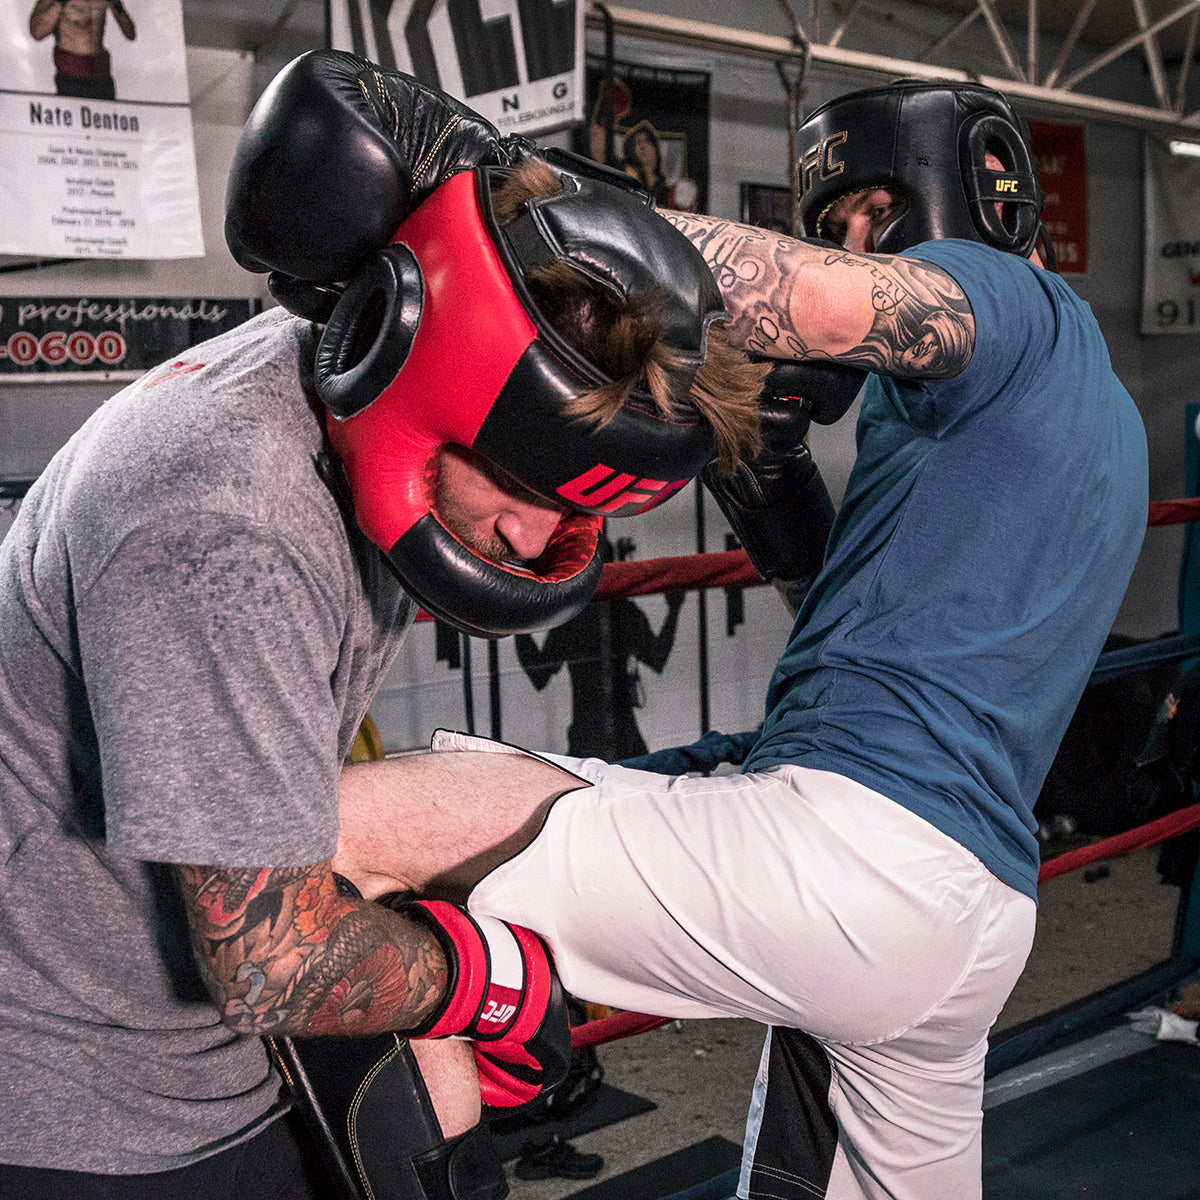 UFC Pro Full Face Headgear in action during training (front view)